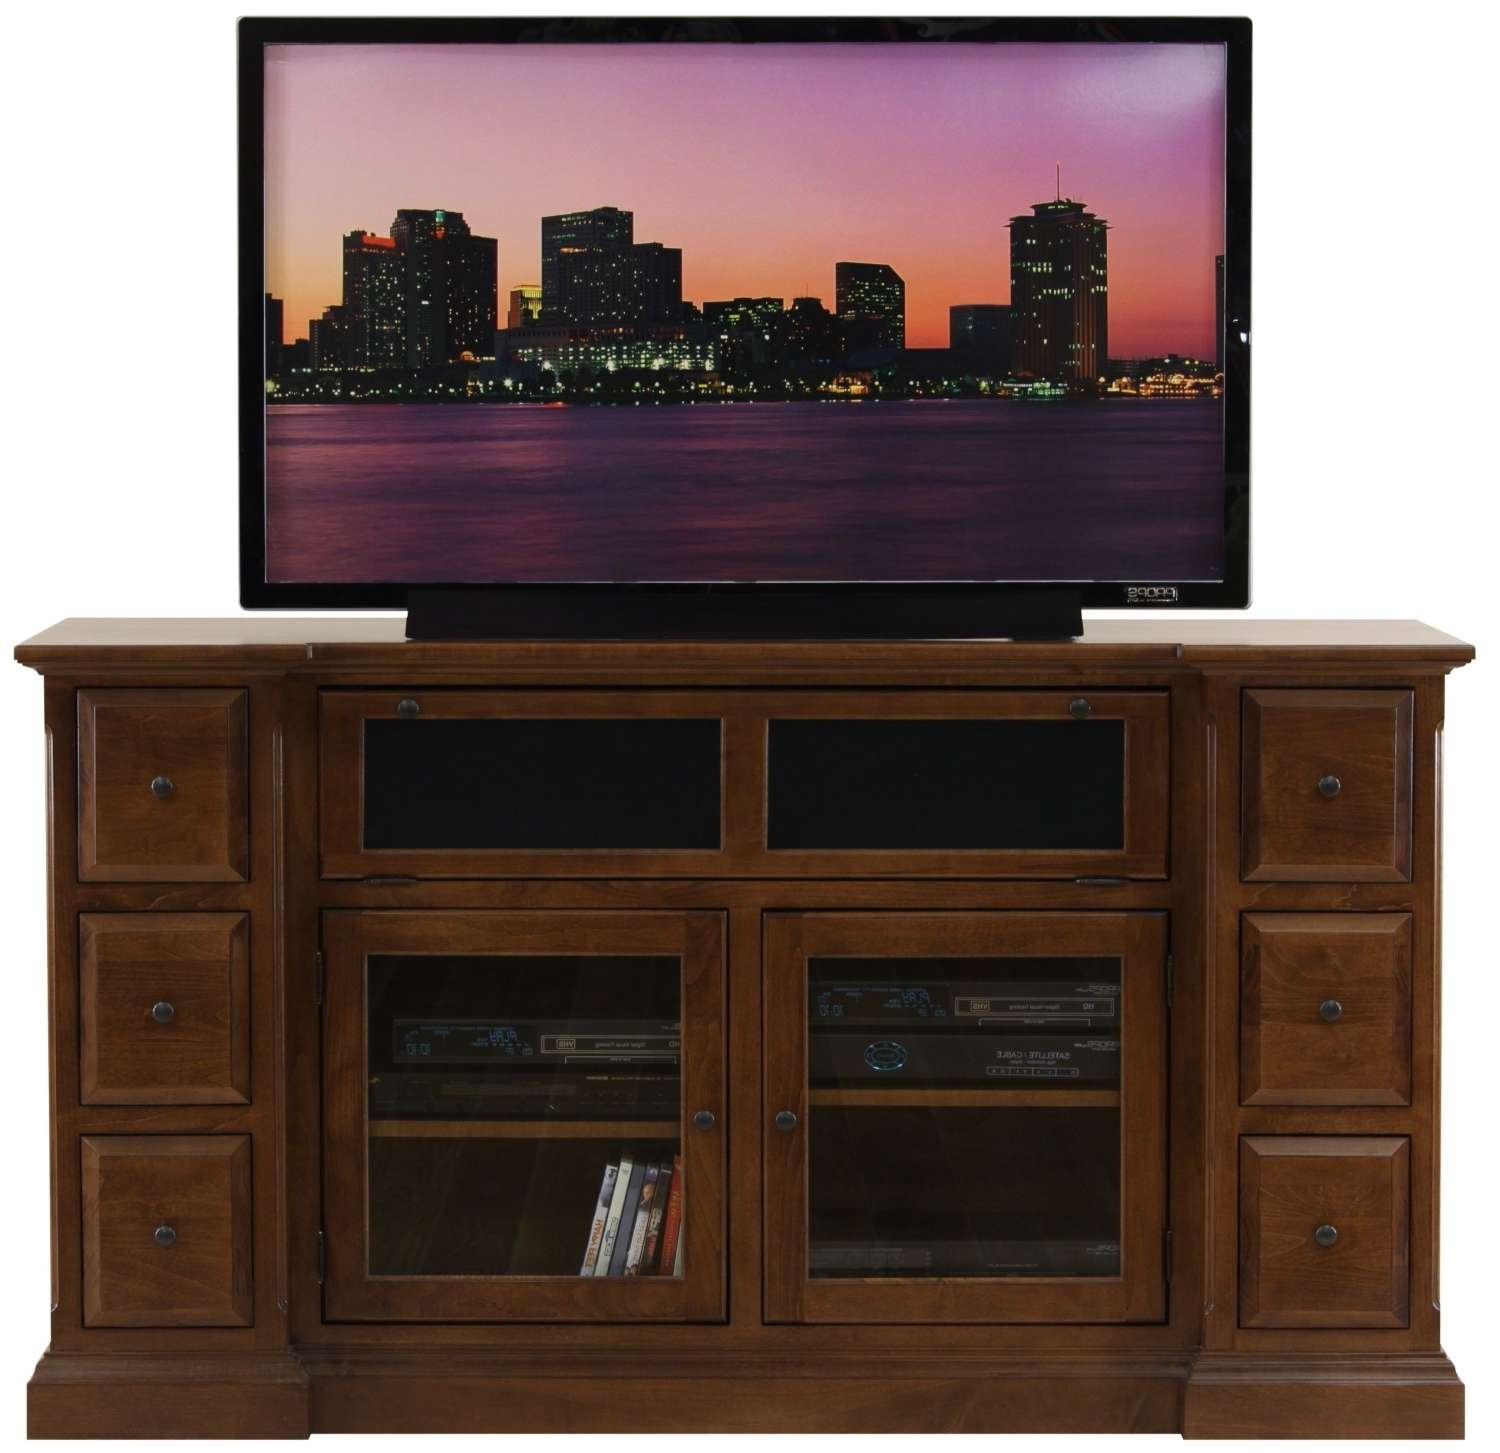 Brown Wooden Tv Stand With Storage With Glass Doors Combined With In Wooden Tv Stands With Glass Doors (View 3 of 15)